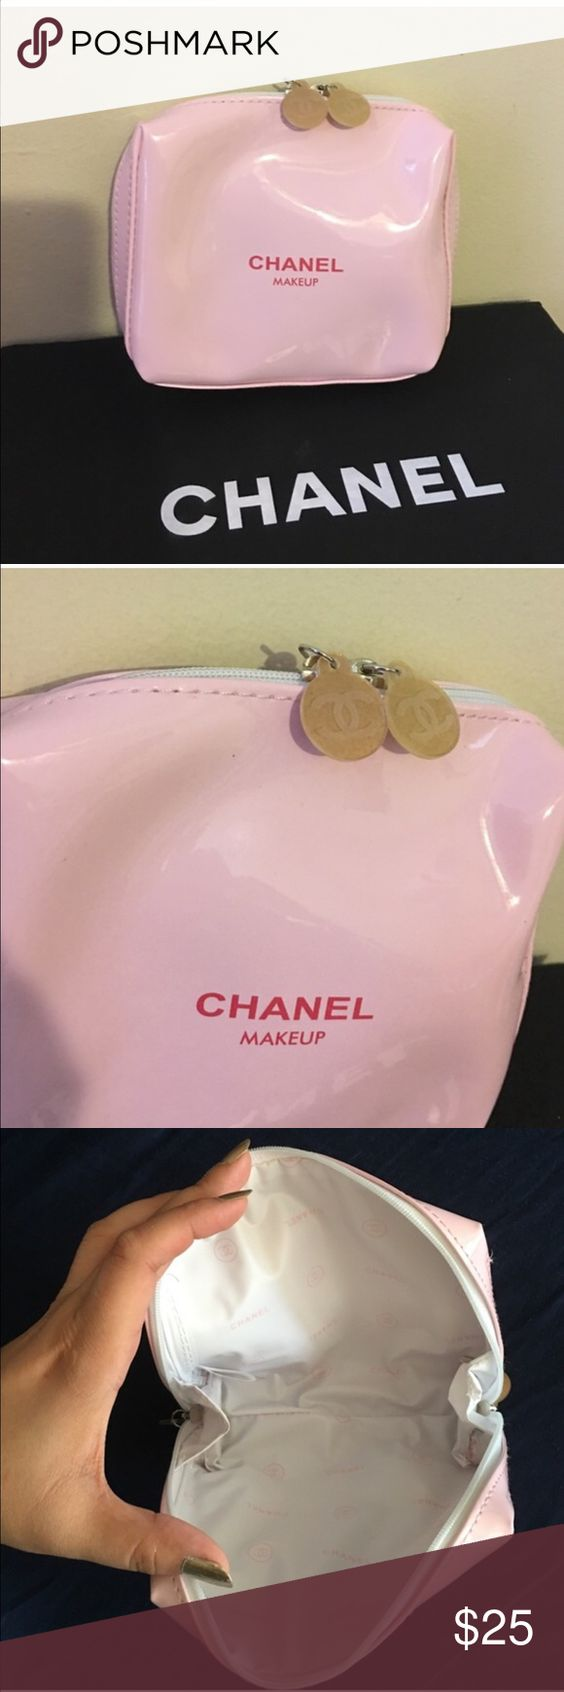 Chanel small pink makeup bag Brand new never used, authentic vip gift CHANEL Accessories